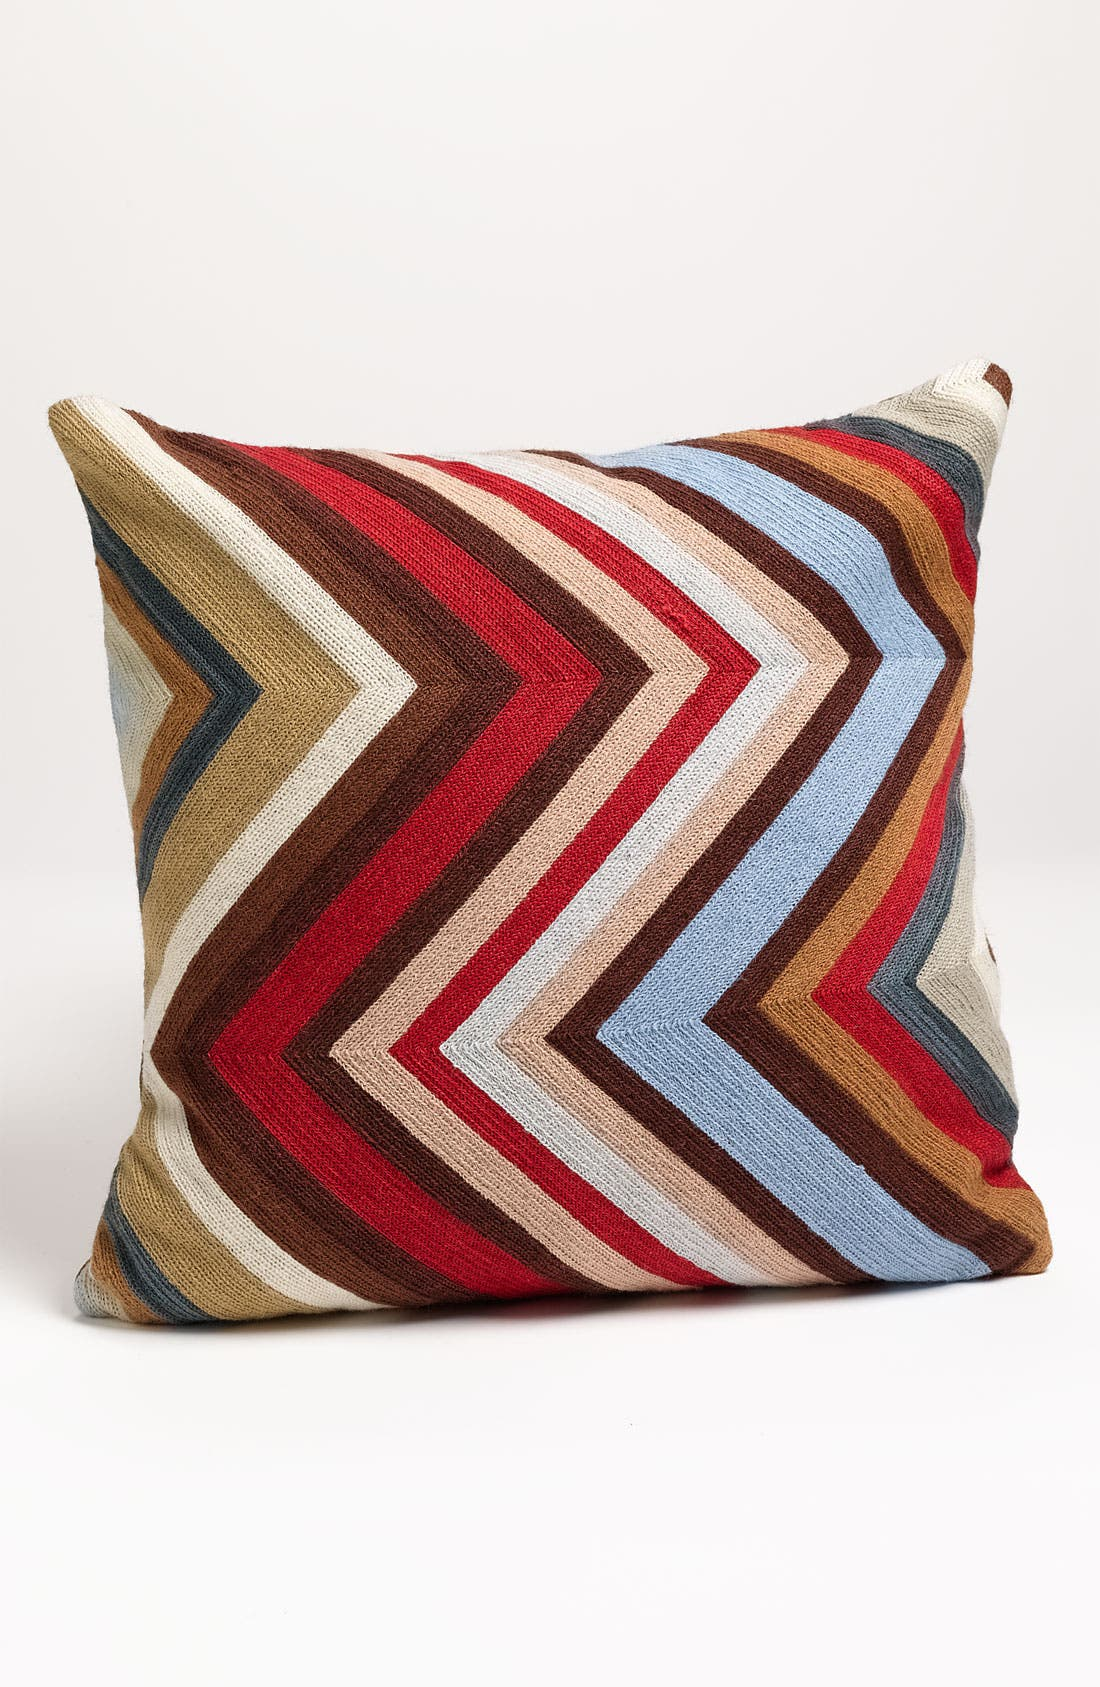 Alternate Image 1 Selected - Mina Victory 'Chevron' Pillow